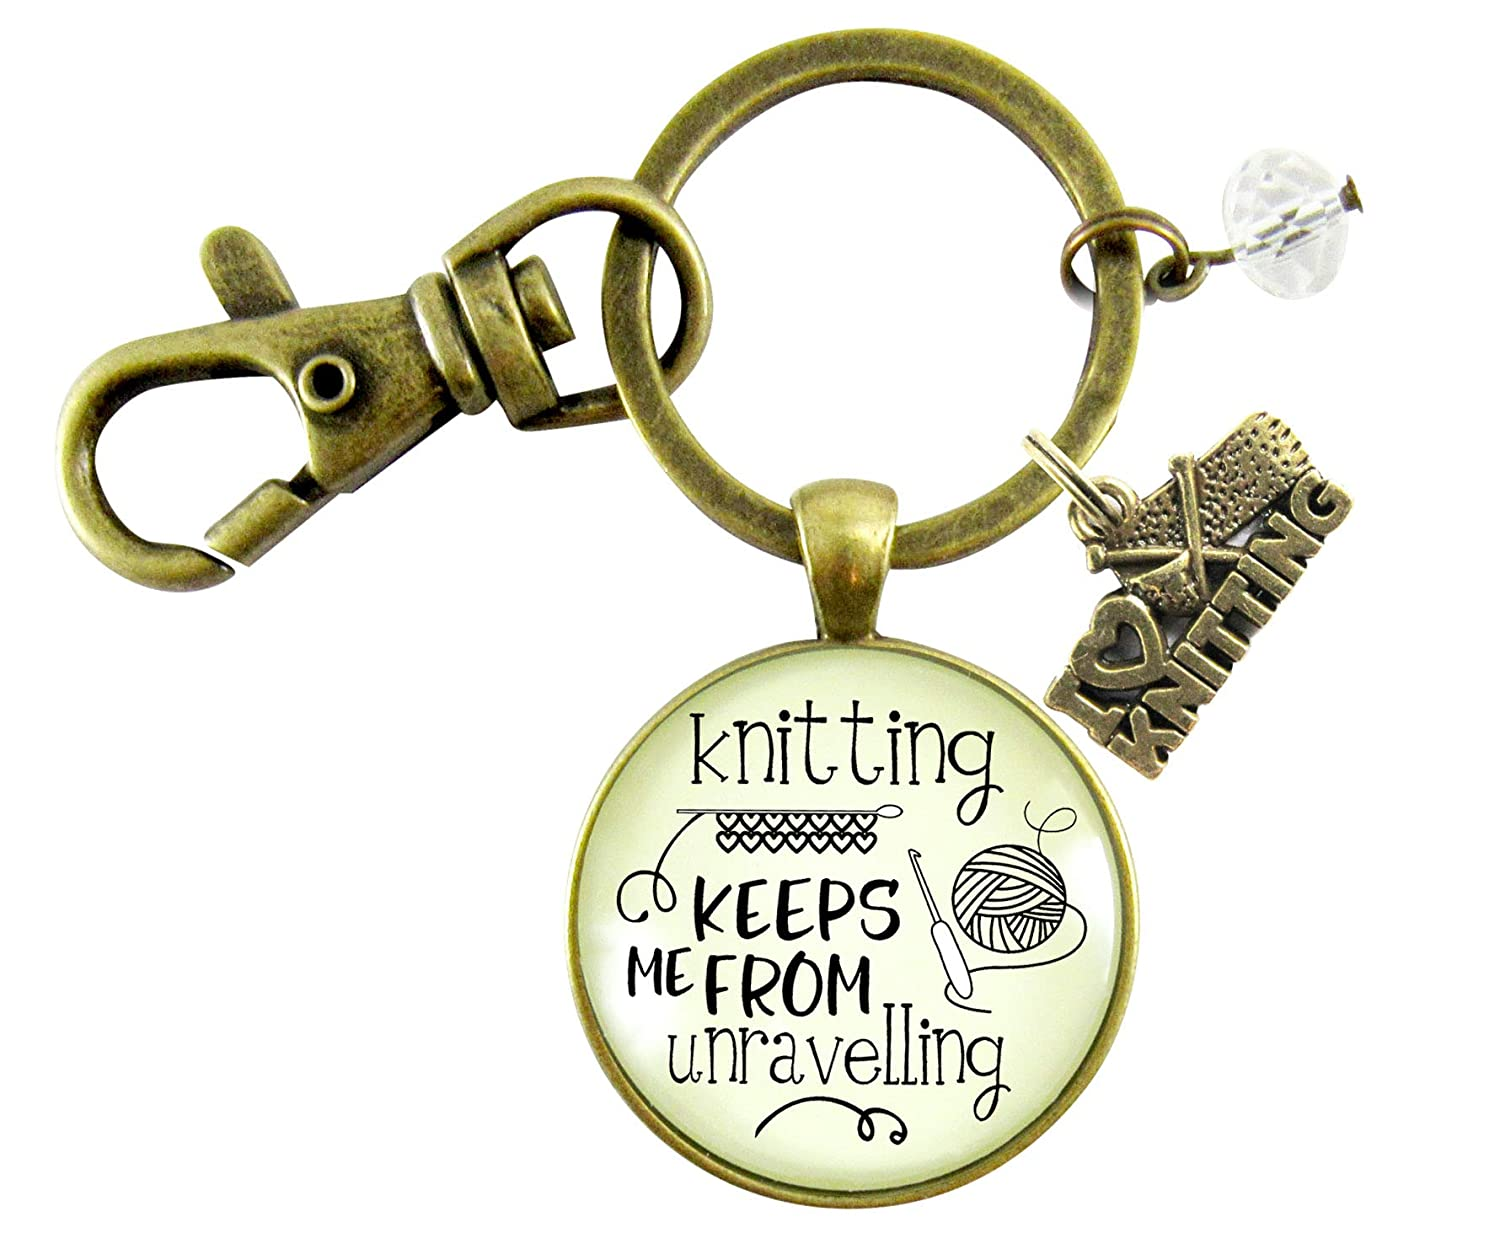 Knitter Keychain Knitting Keeps Me From Unravelling Women's Vintage Inspired Crafters Jewelry Gift Yarn Love Charm - Gutsy Goodness